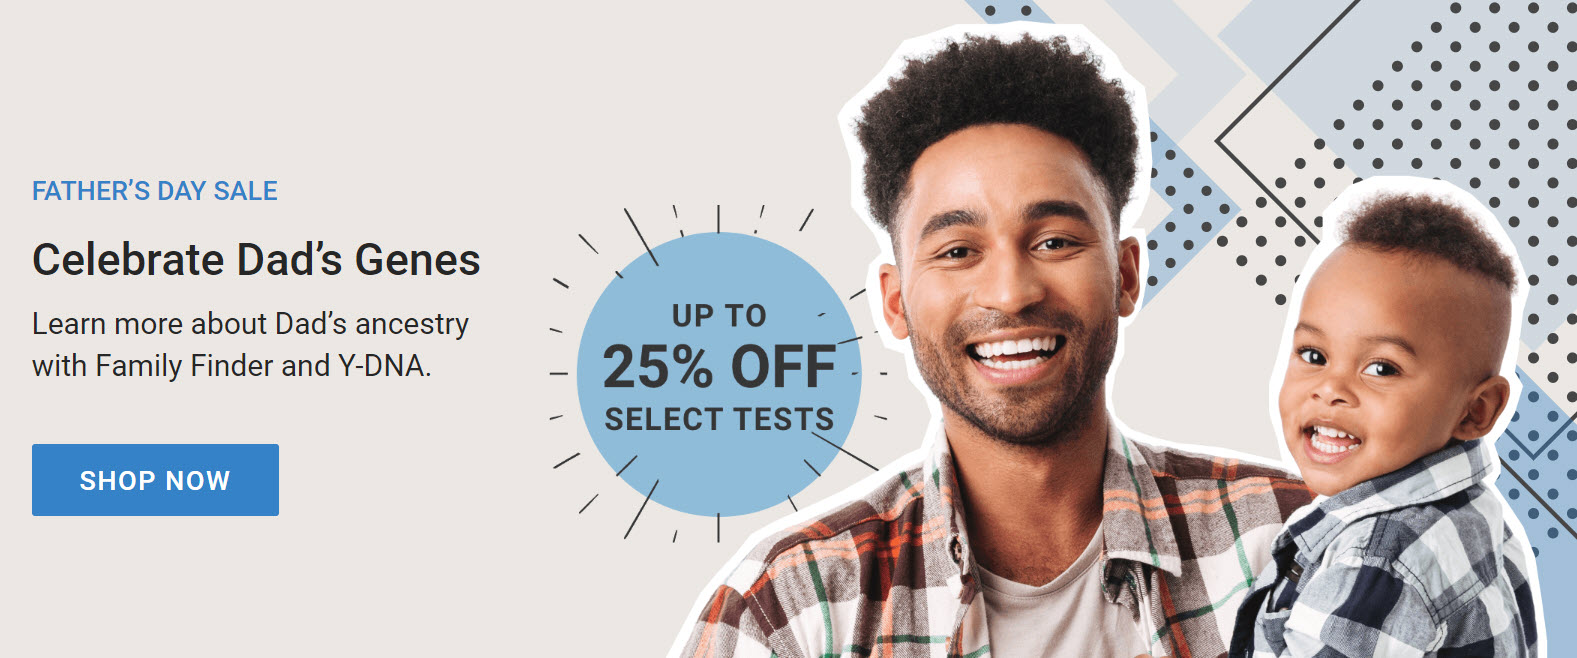 "Family Tree DNA: Save up to 25% on select DNA tests during the Family Tree DNA Father's Day Sale!  Family Tree DNA is holding an AMAZING Father's Day Sale with some GREAT prices on DNA test kits and bundles! ""Father's Day is almost here, so get a jump on honoring Dad with extra savings on our best-selling DNA kits for ancestry. Give the gift of family discovery—because Dad genes never fade."" Family Finder DNA test kit, regularly $79, now just $59! Y-DNA test kits starting at just $129!"